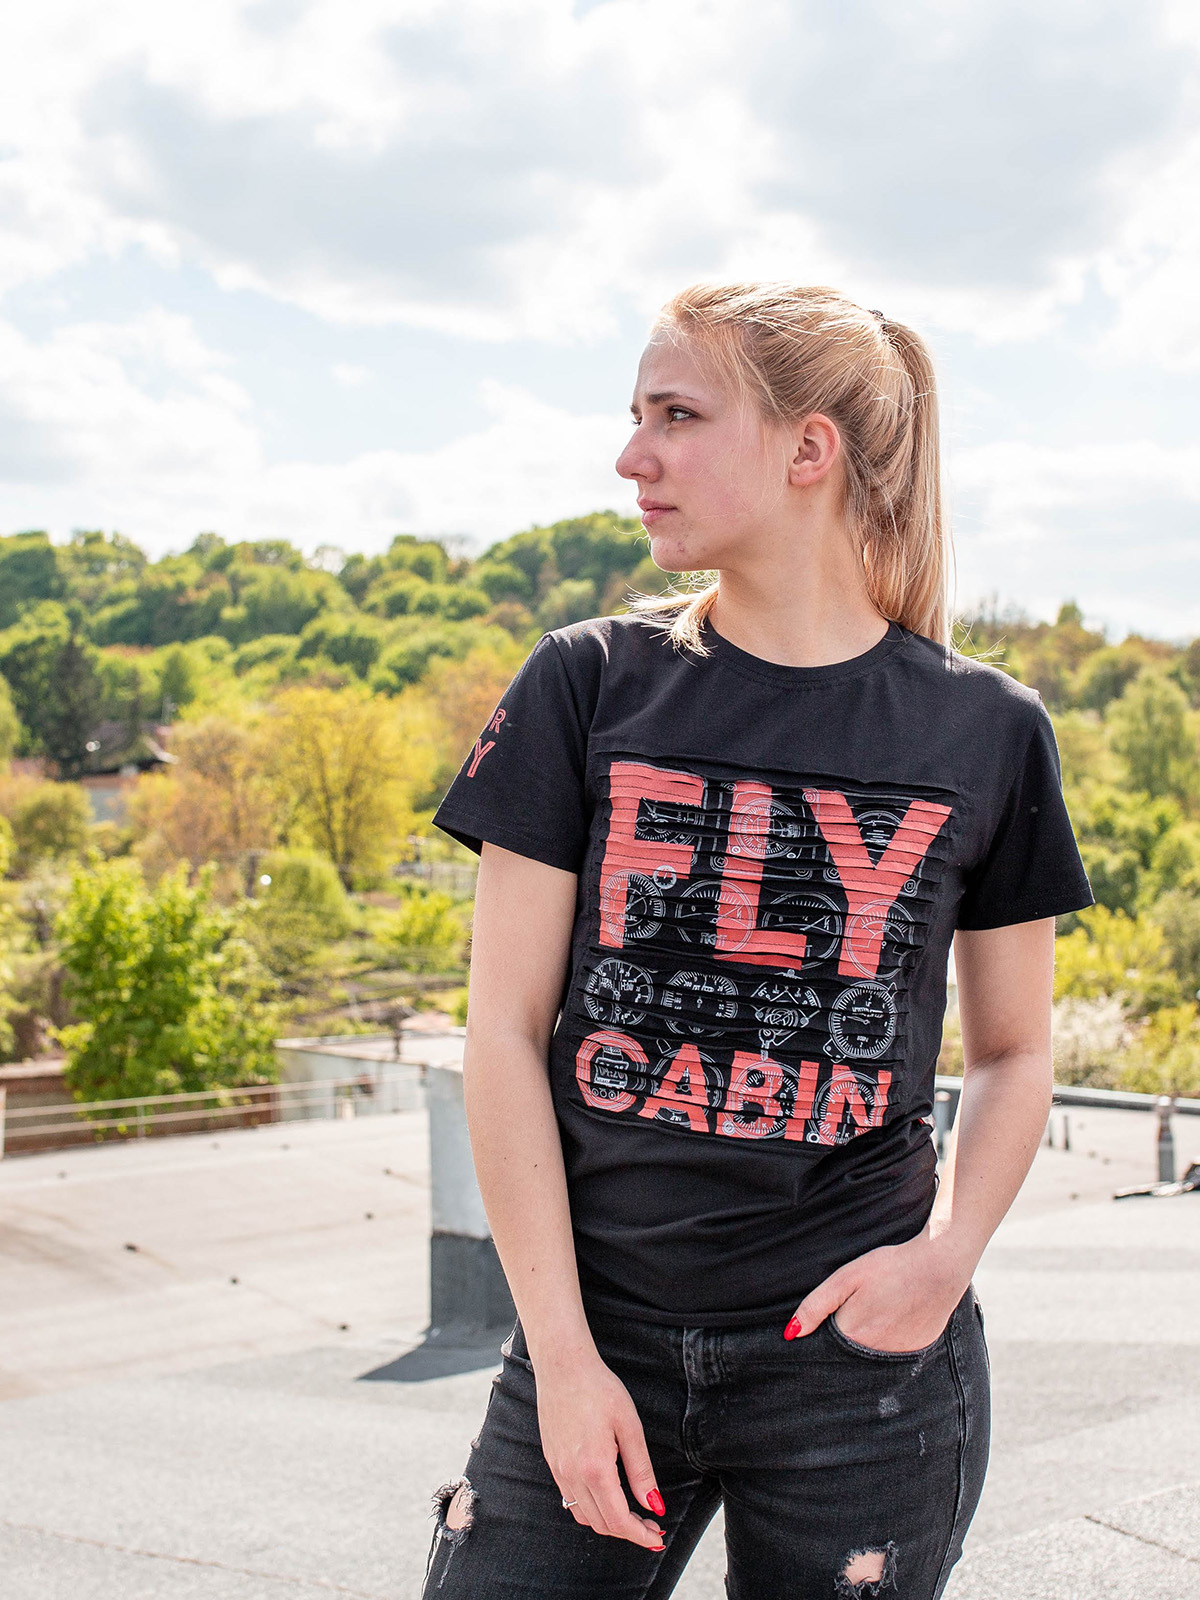 Women's T-Shirt Fly Cabin. Color black.  Polo looks great on a female figure! Material: 95% cotton, 5% spandex.